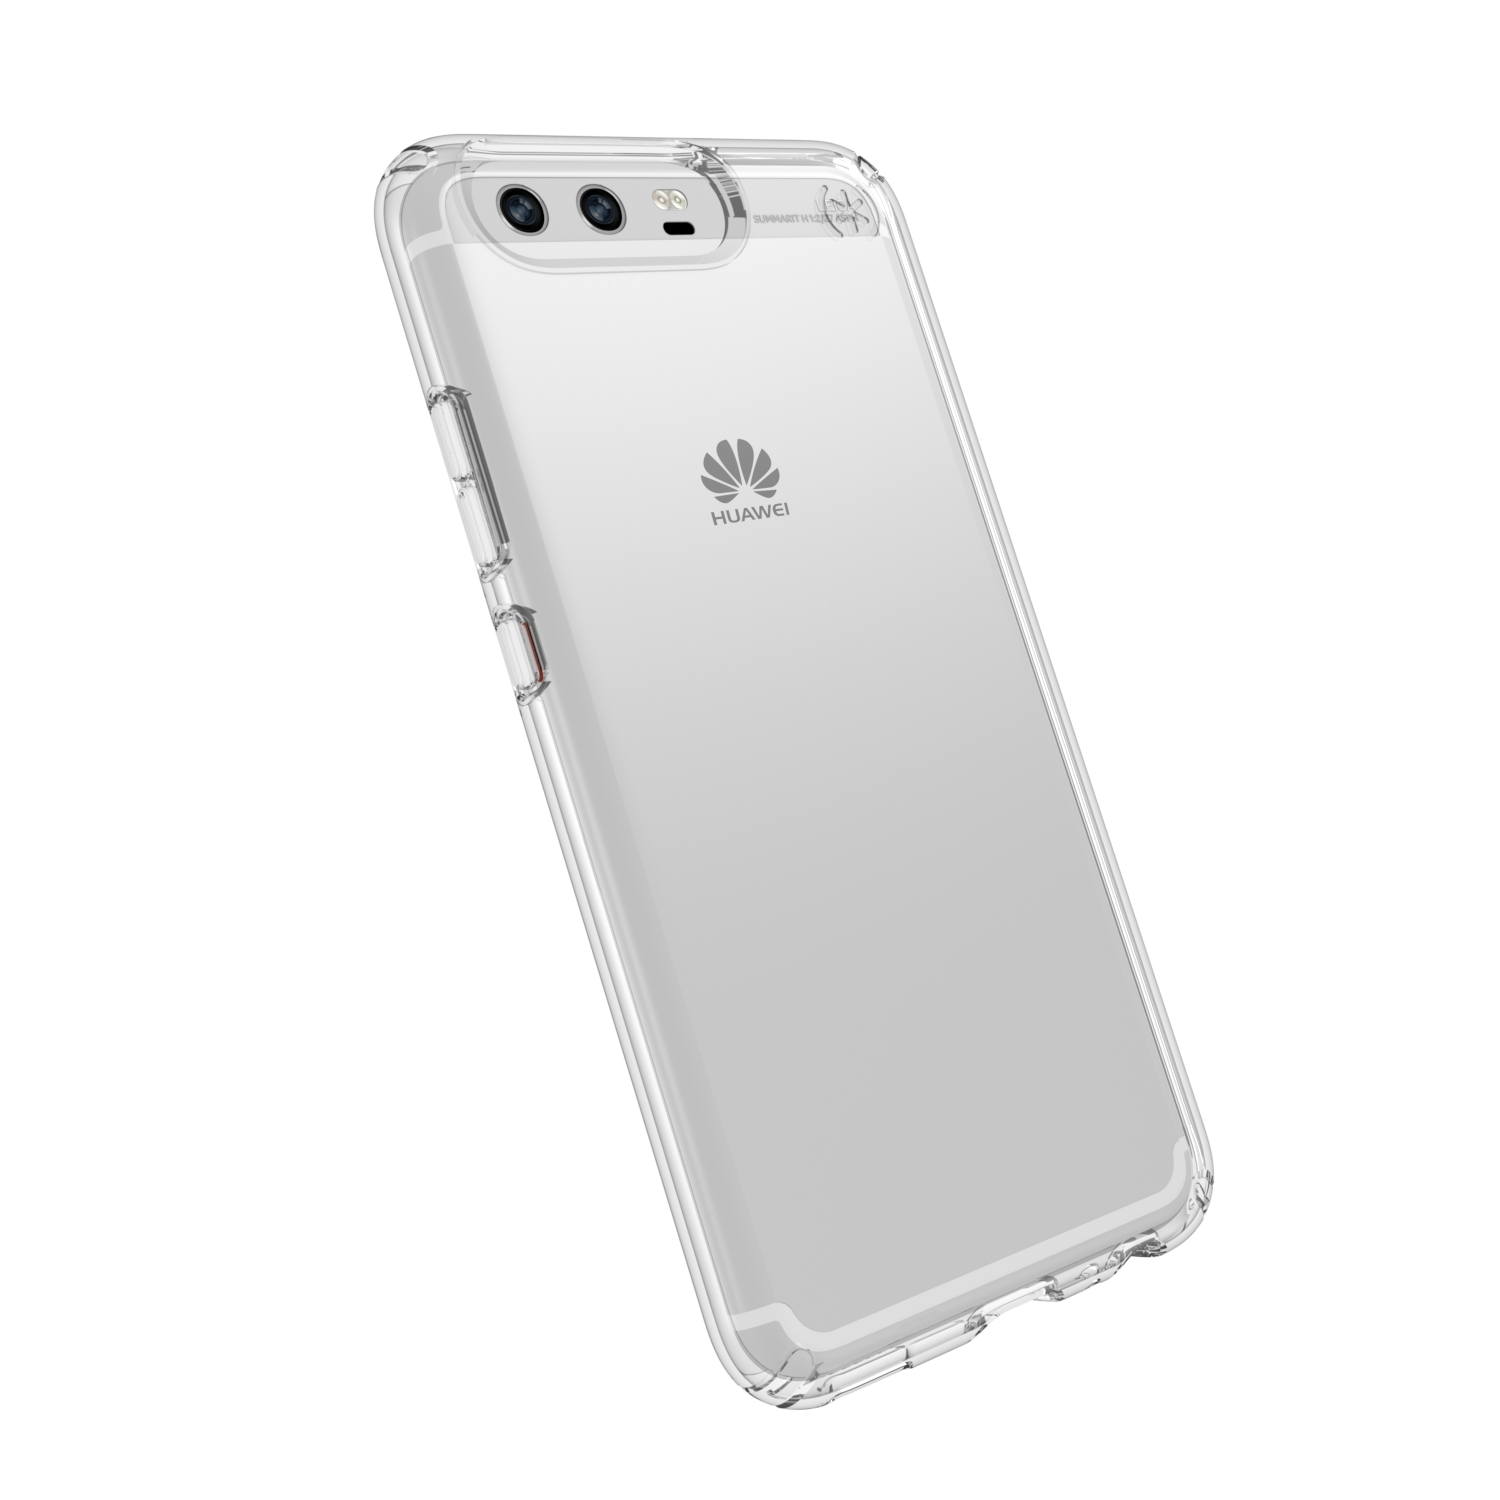 Search and compare best prices of Speck Presidio Clear Huawei P10 Cases Clear in UK